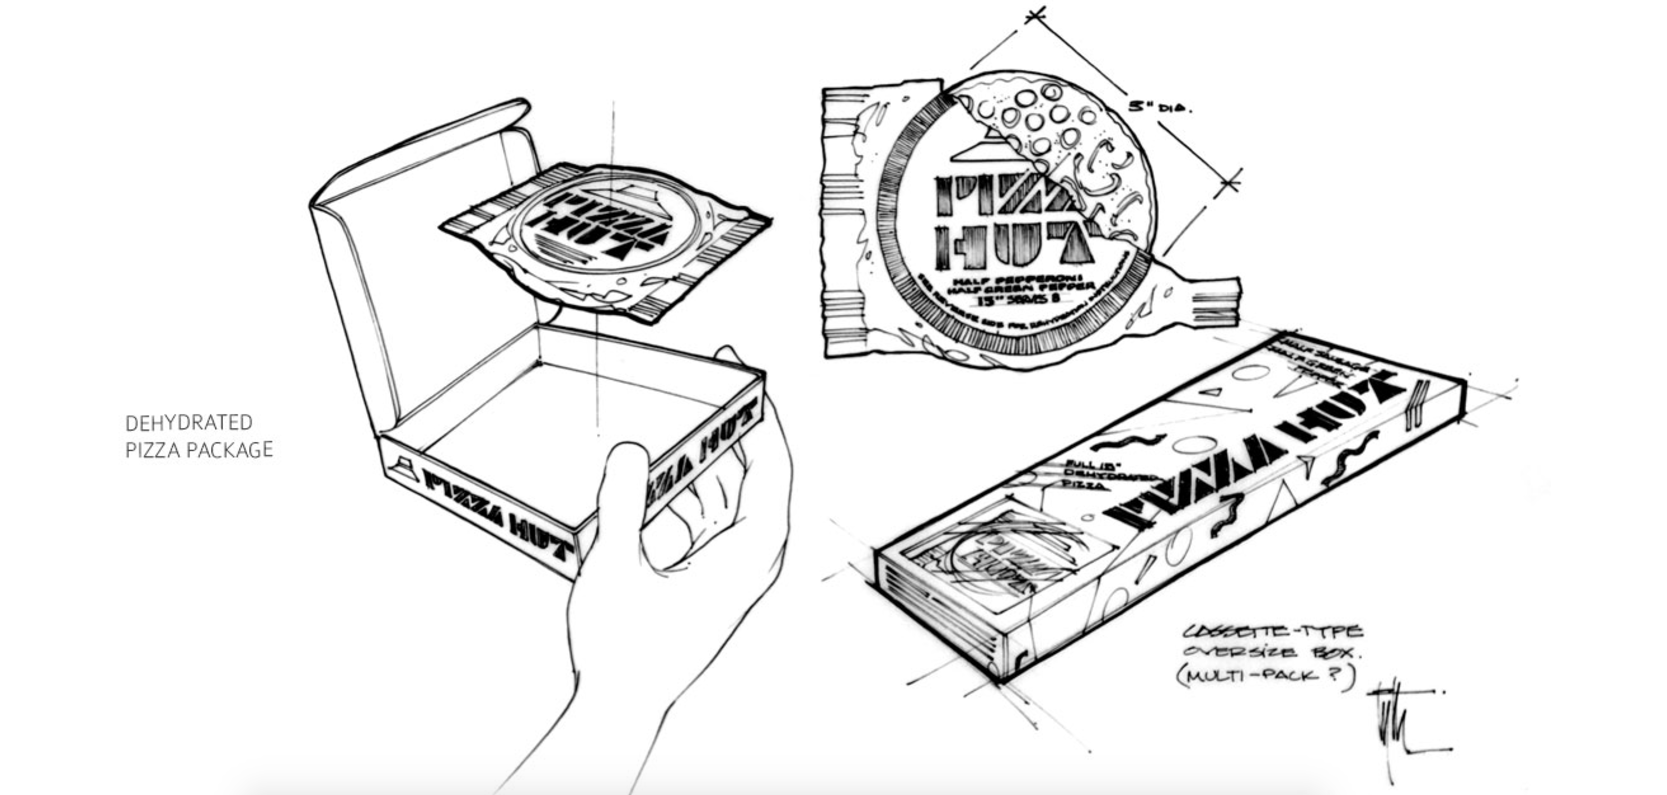 Edward Eyth Design sketching Back to the future II Dehydrated Pizza Package